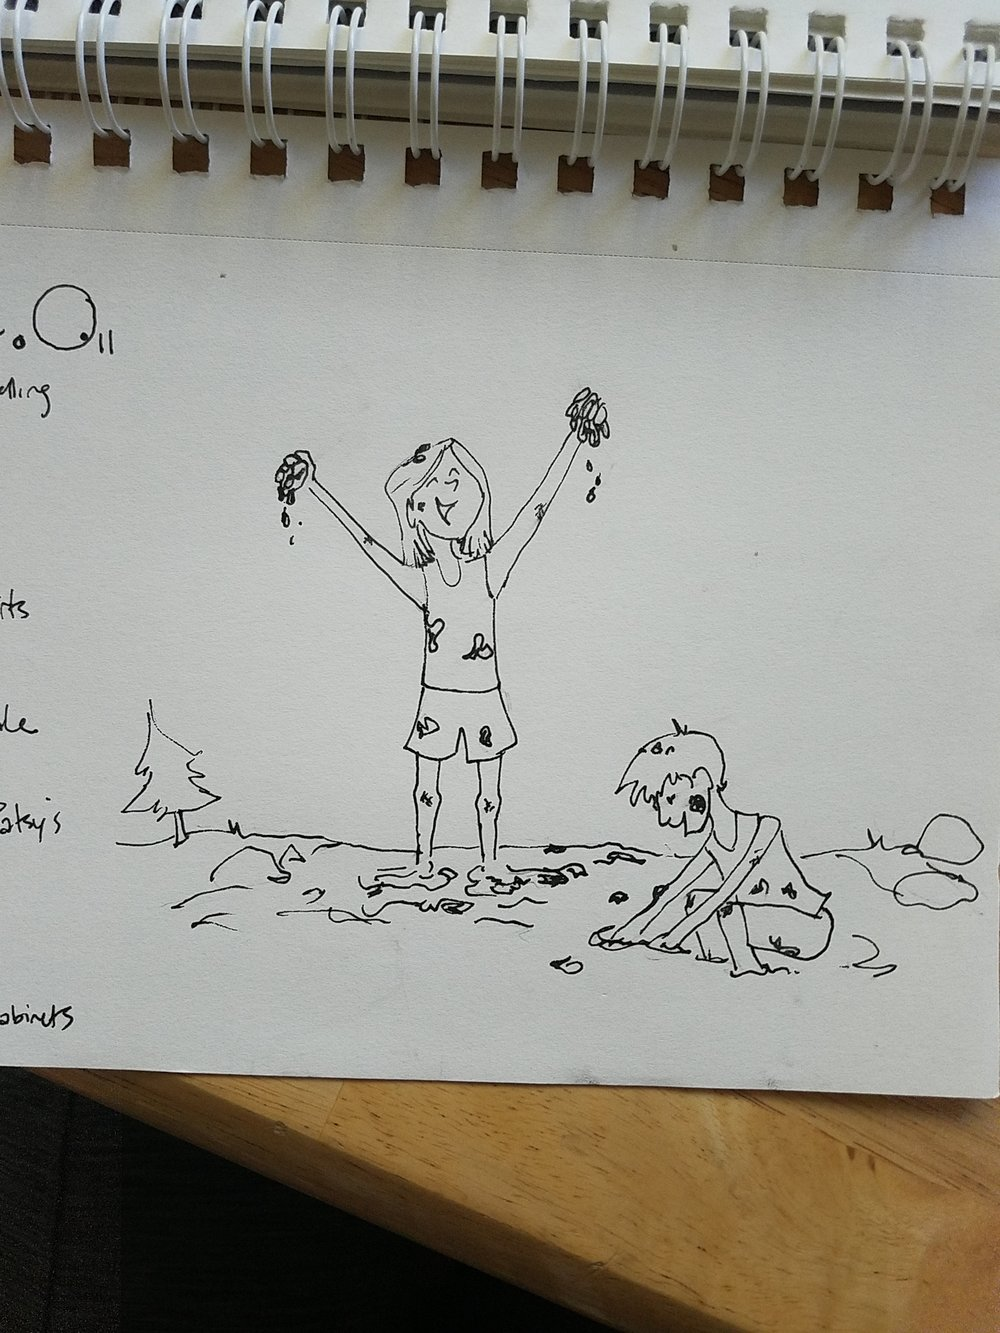 In the Studio:  Editing a video about Fire Adapted Communities, Journey Mapping for an international corporation, and illustrating a holiday card for a local foundation! Since I don't photograph myself in the studio, here's a fun sketch I did for International Day of the Girl, celebrating adventures and mud puddles for girls everywhere!